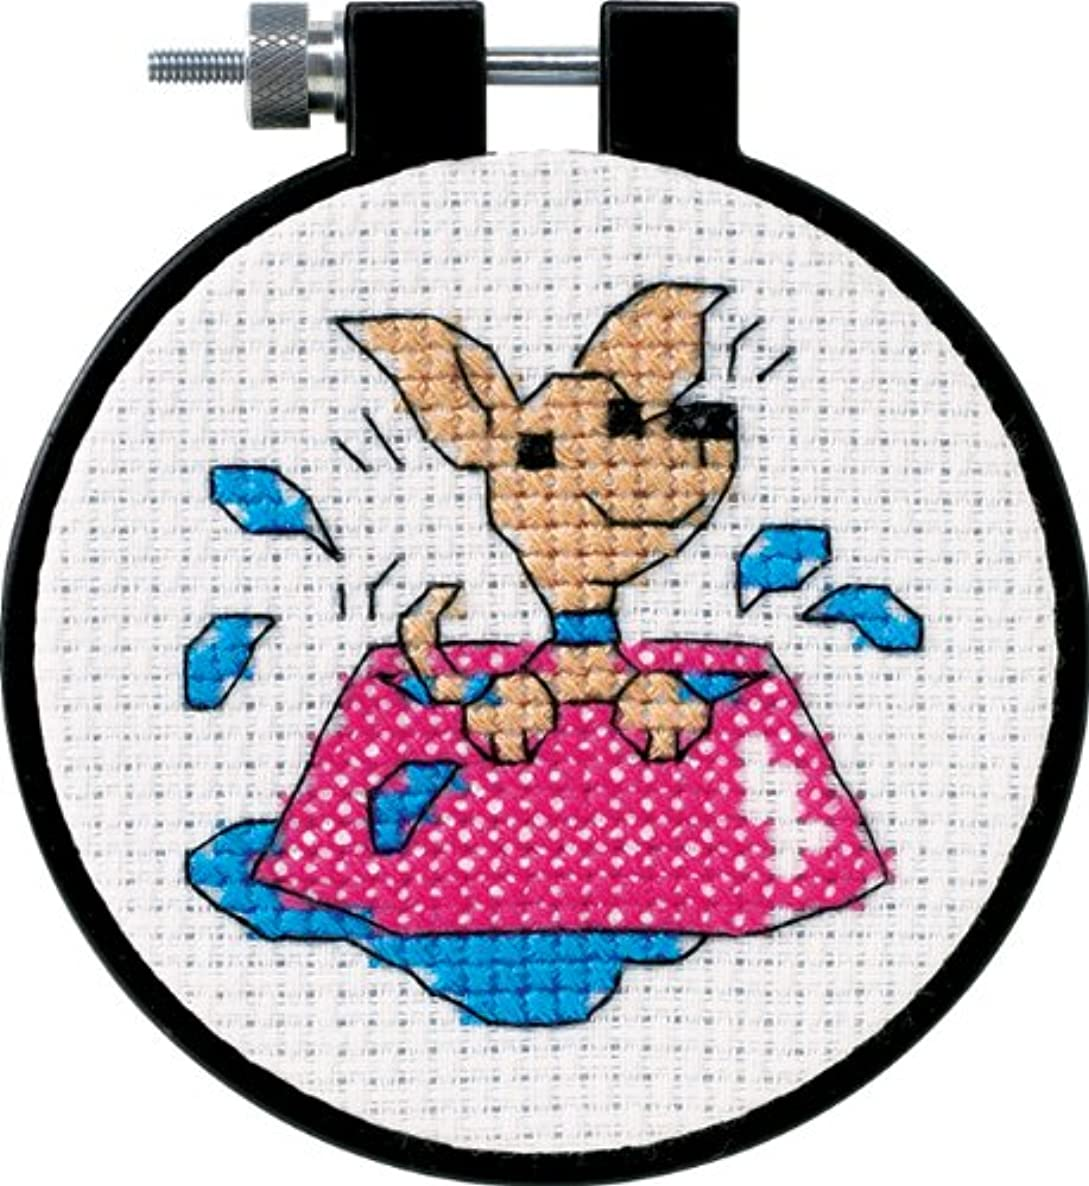 Learn-A-Craft Perky Puppy Counted Cross Stitch Kit-3